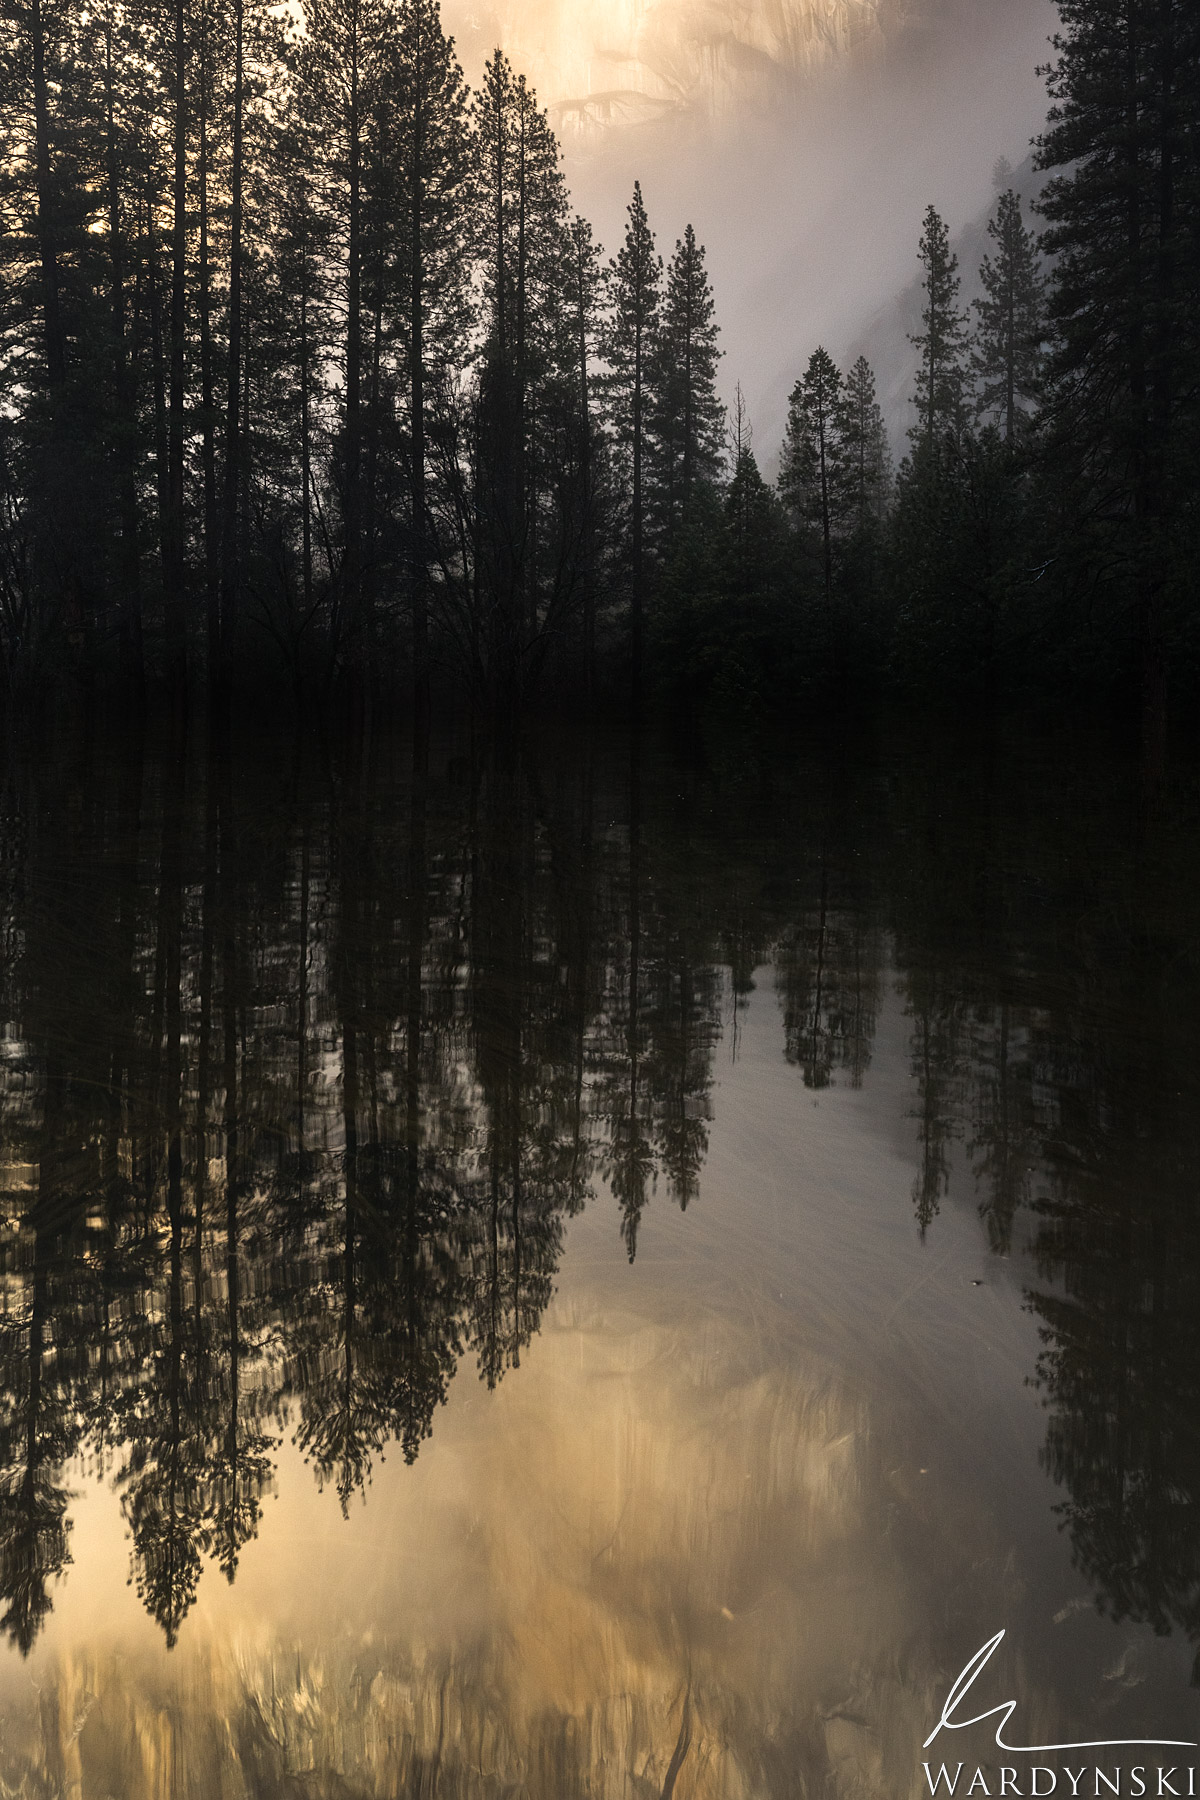 Fine Art Print | Limited Edition of 50  Golden reflections of El Capitan dance across a small pond in Yosemite Valley in the...